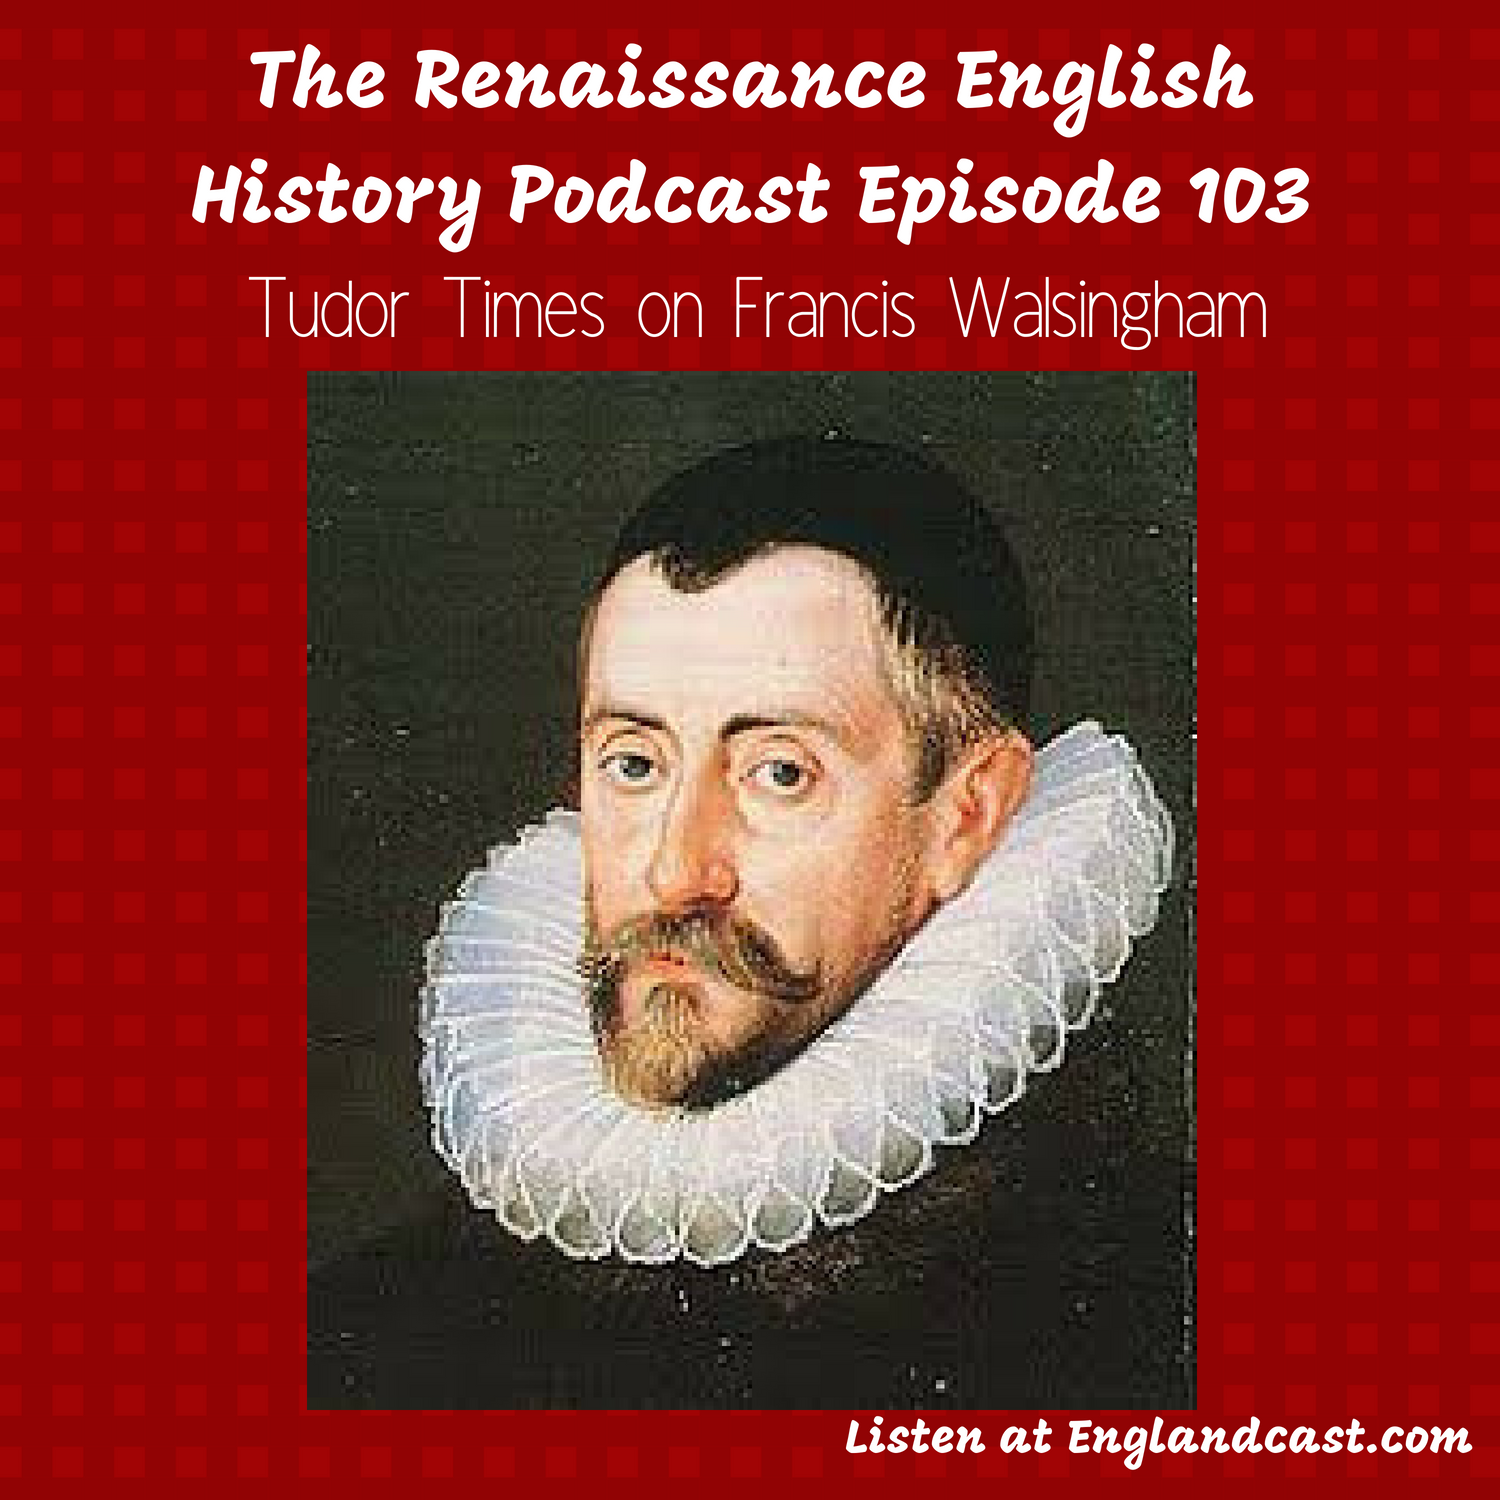 Episode 103: Tudor Times on Francis Walsingham